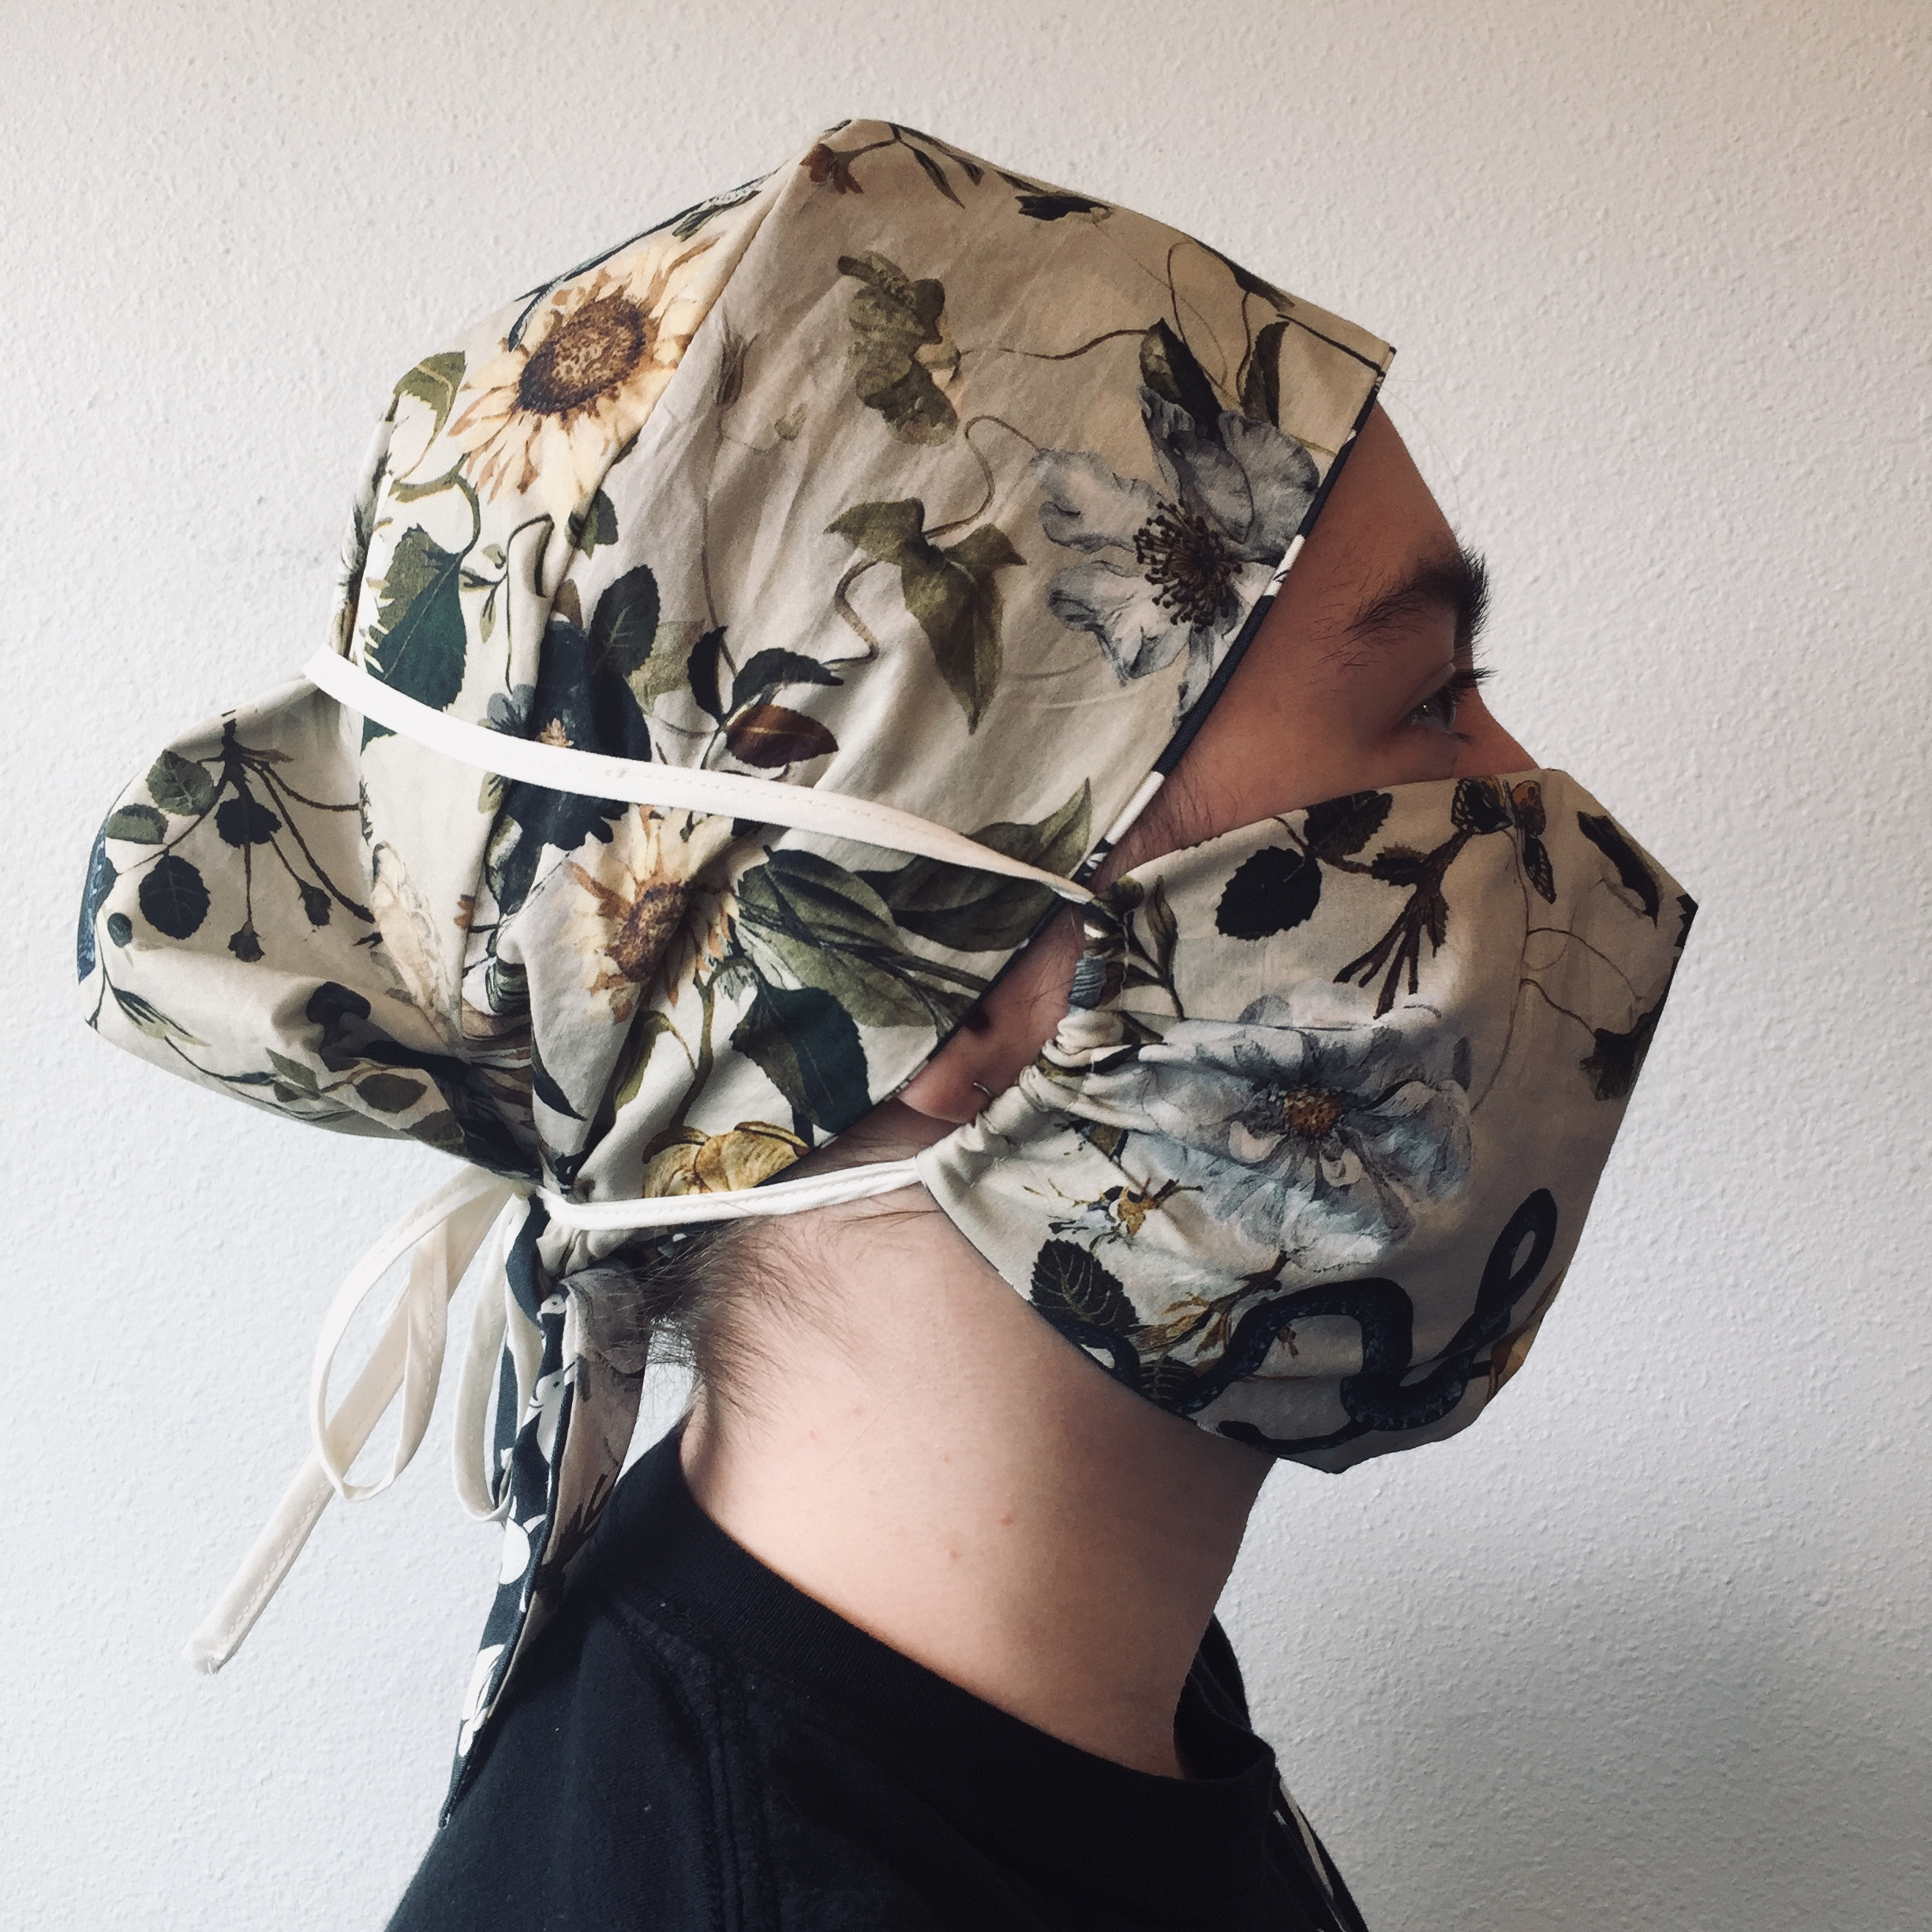 tutorial: sewing a custom mask & surgical cap